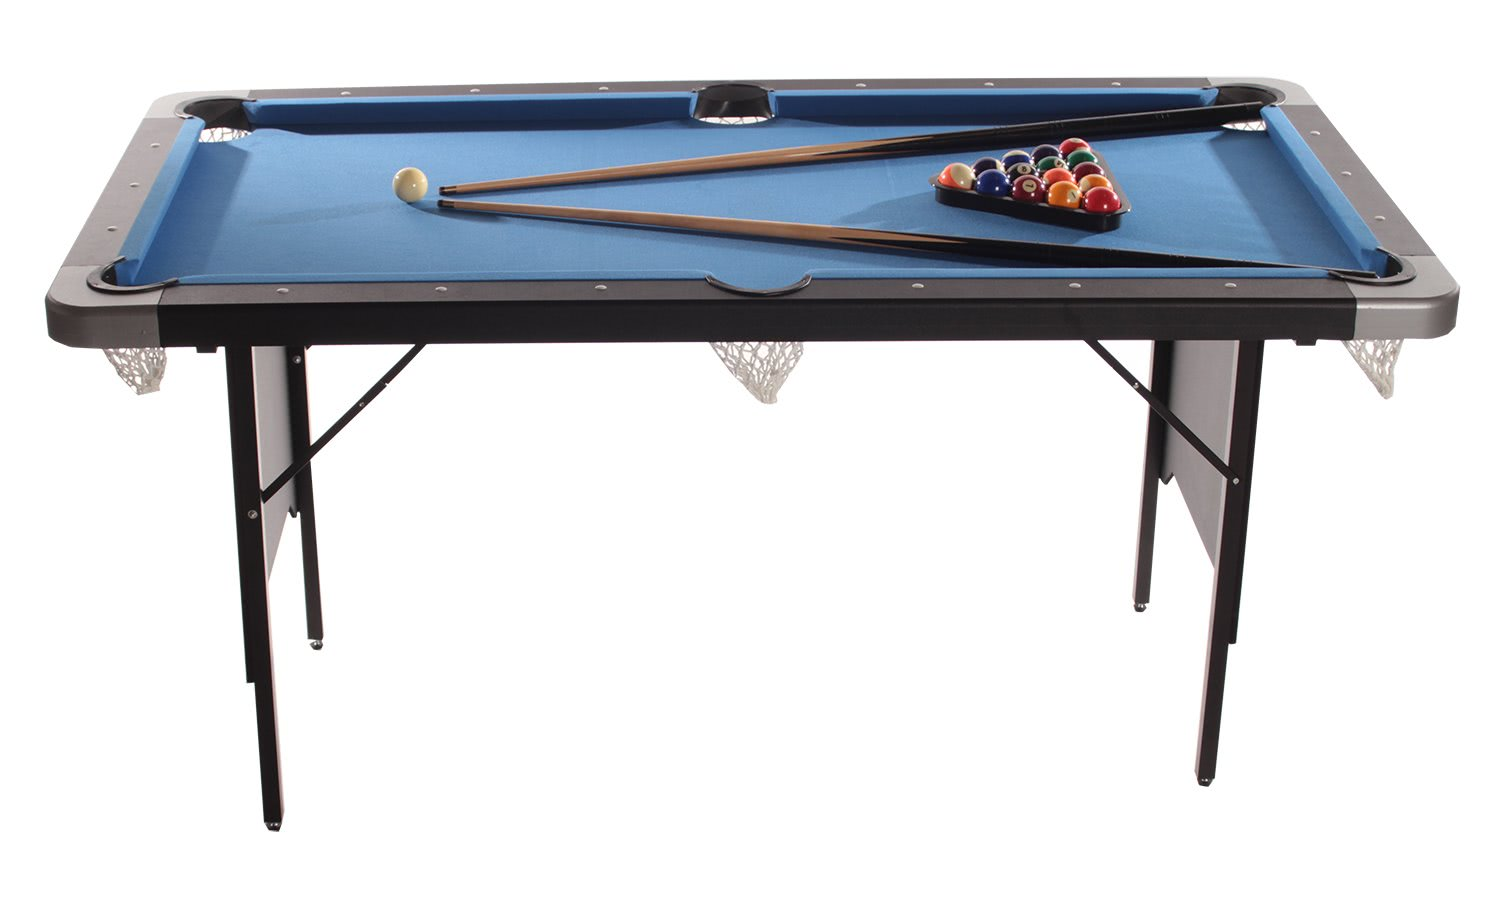 Poker Table Top Folding picture on tekscore folding leg pool table and table tennis top with Poker Table Top Folding, Folding Table d424185be745f77b8314624f578edf5c